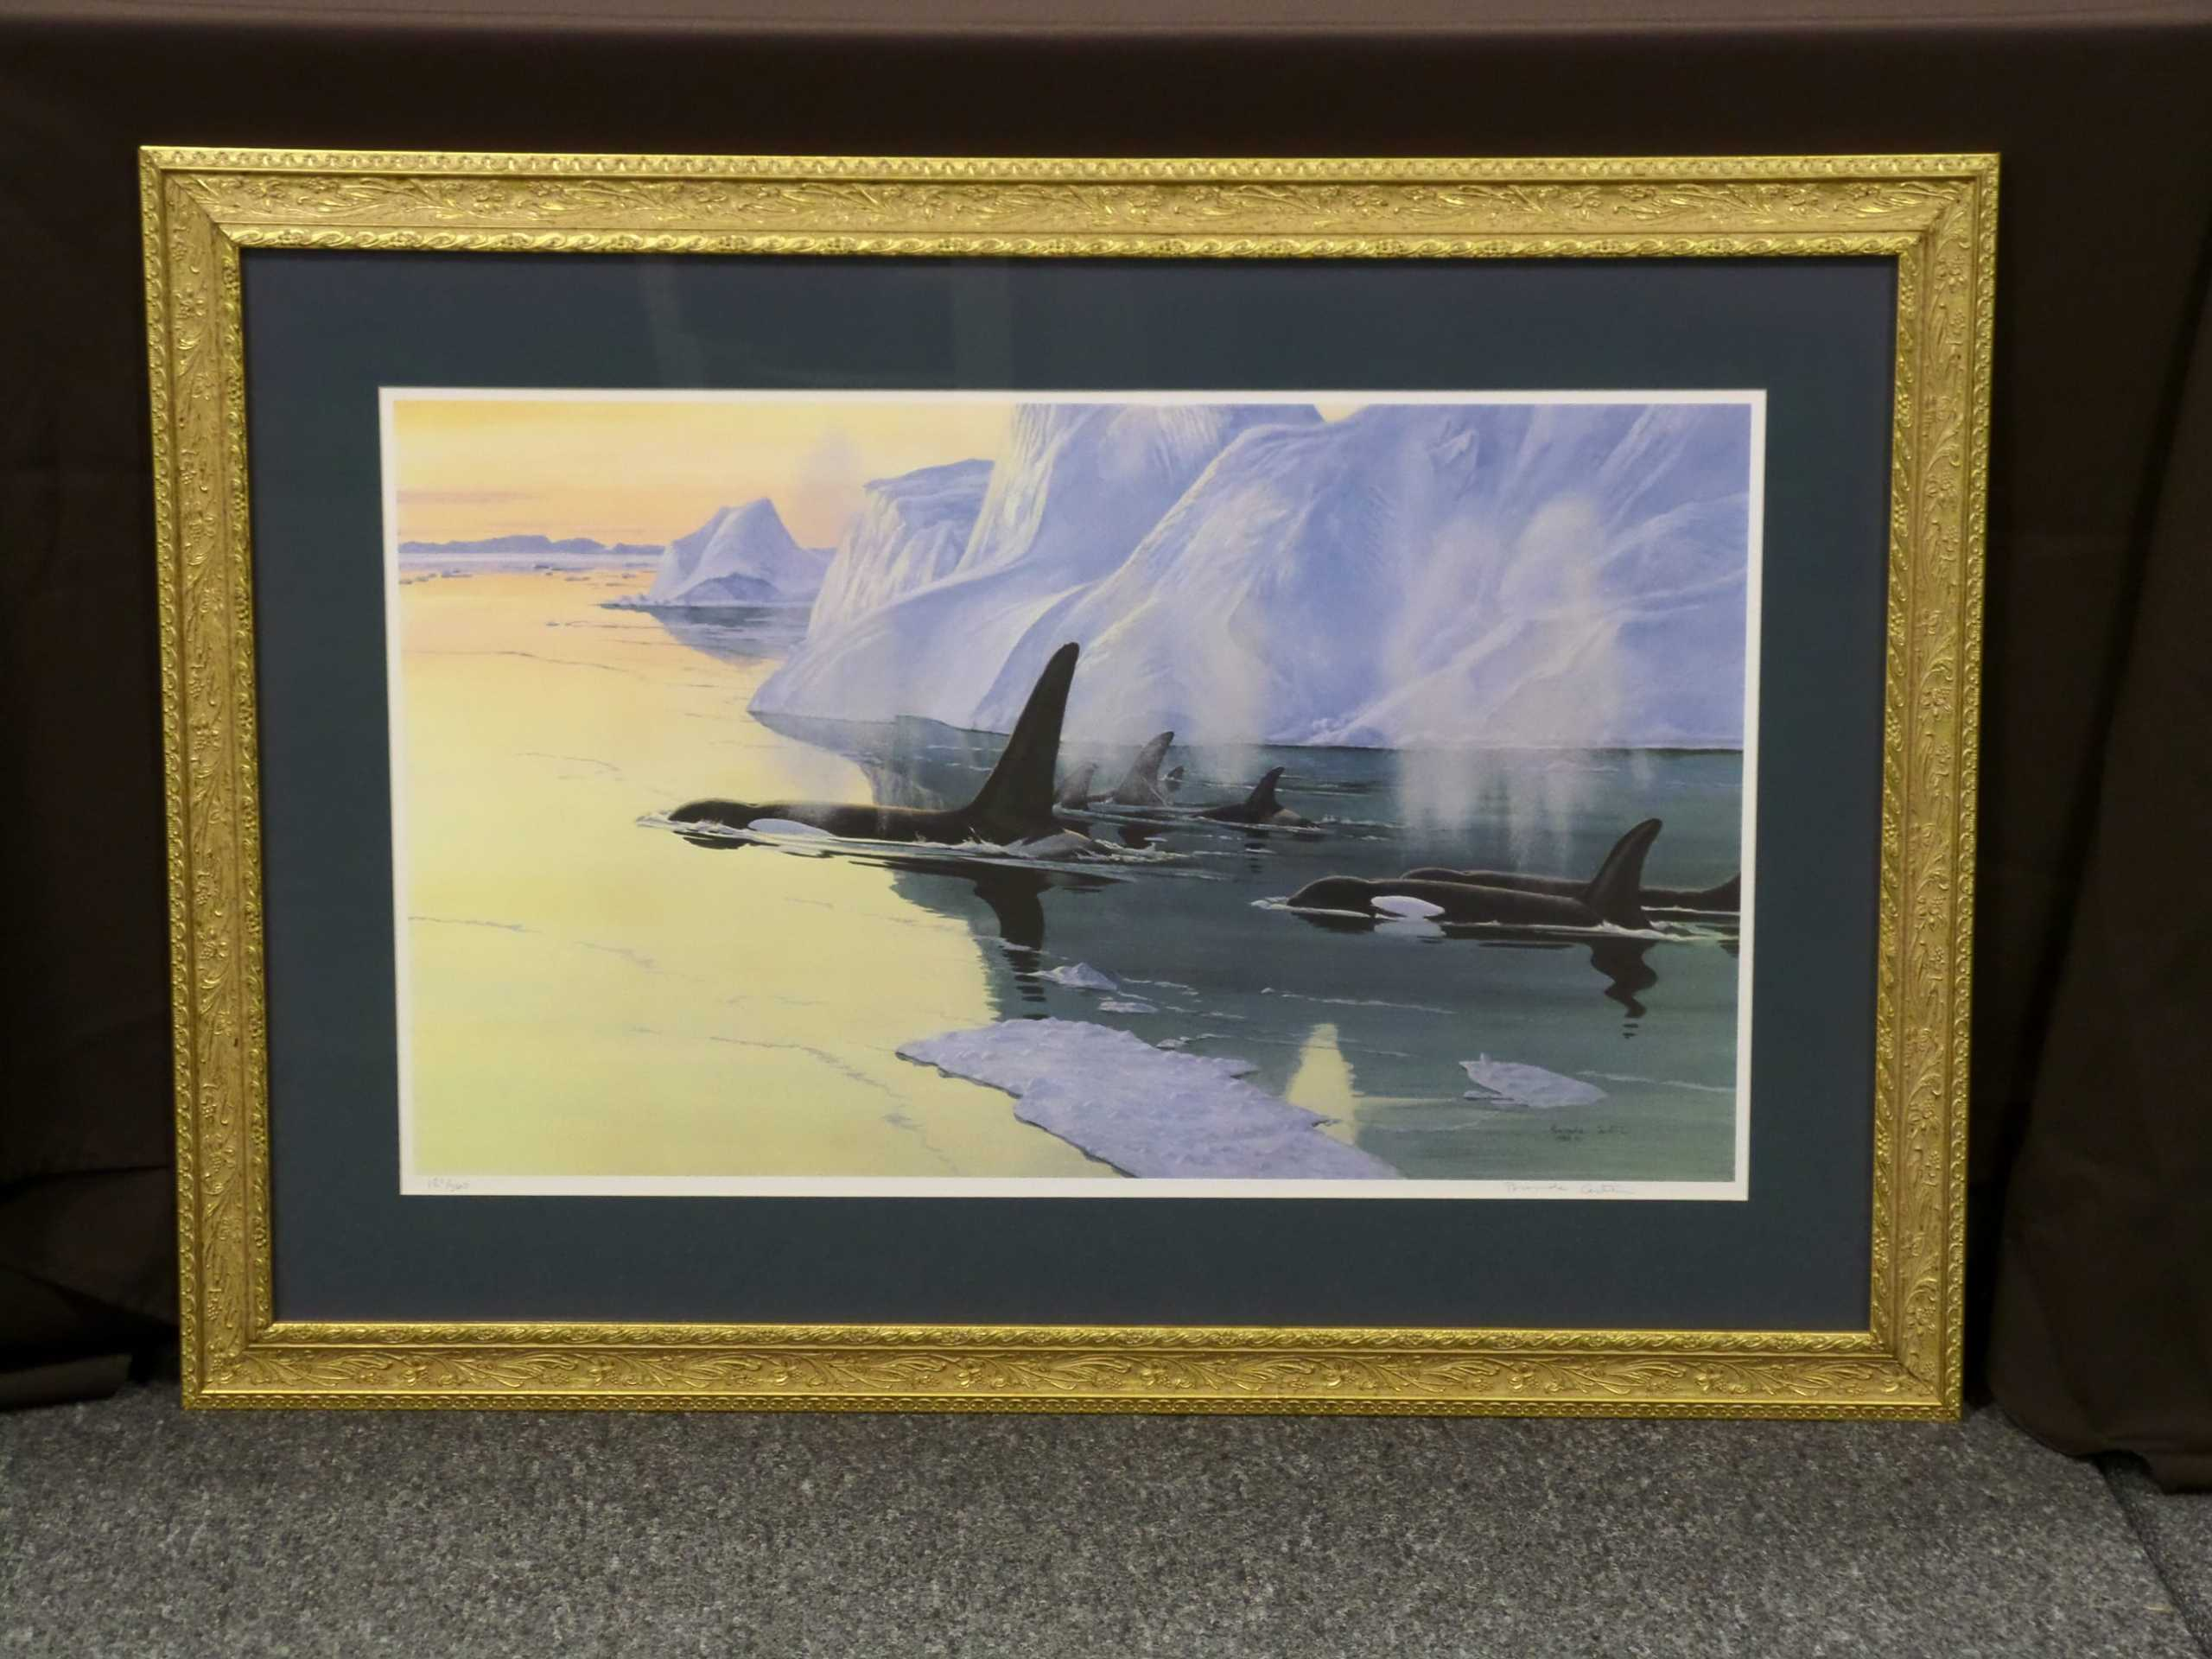 FRAMED ORCA PRINT <br/> Donated by: DON DIMONDA <br/> Valued at: $375